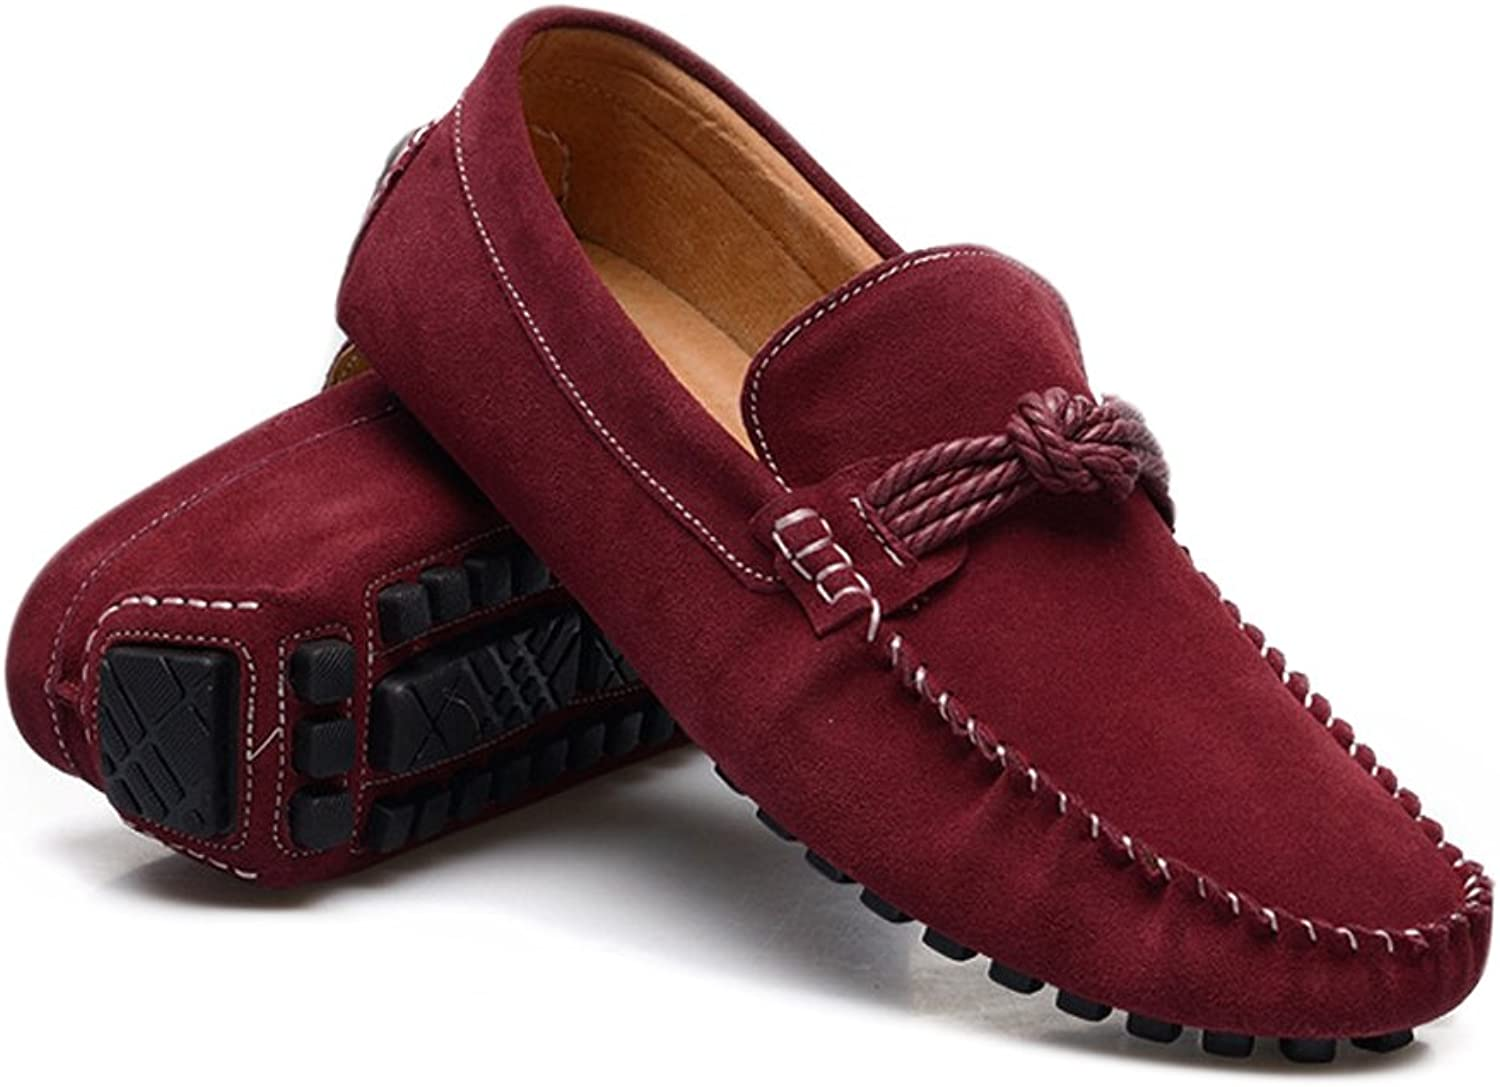 Men's Driving Penny Slip-on Loafers Moccasins Hemp Rope Decor Genuine Leather Cricket shoes